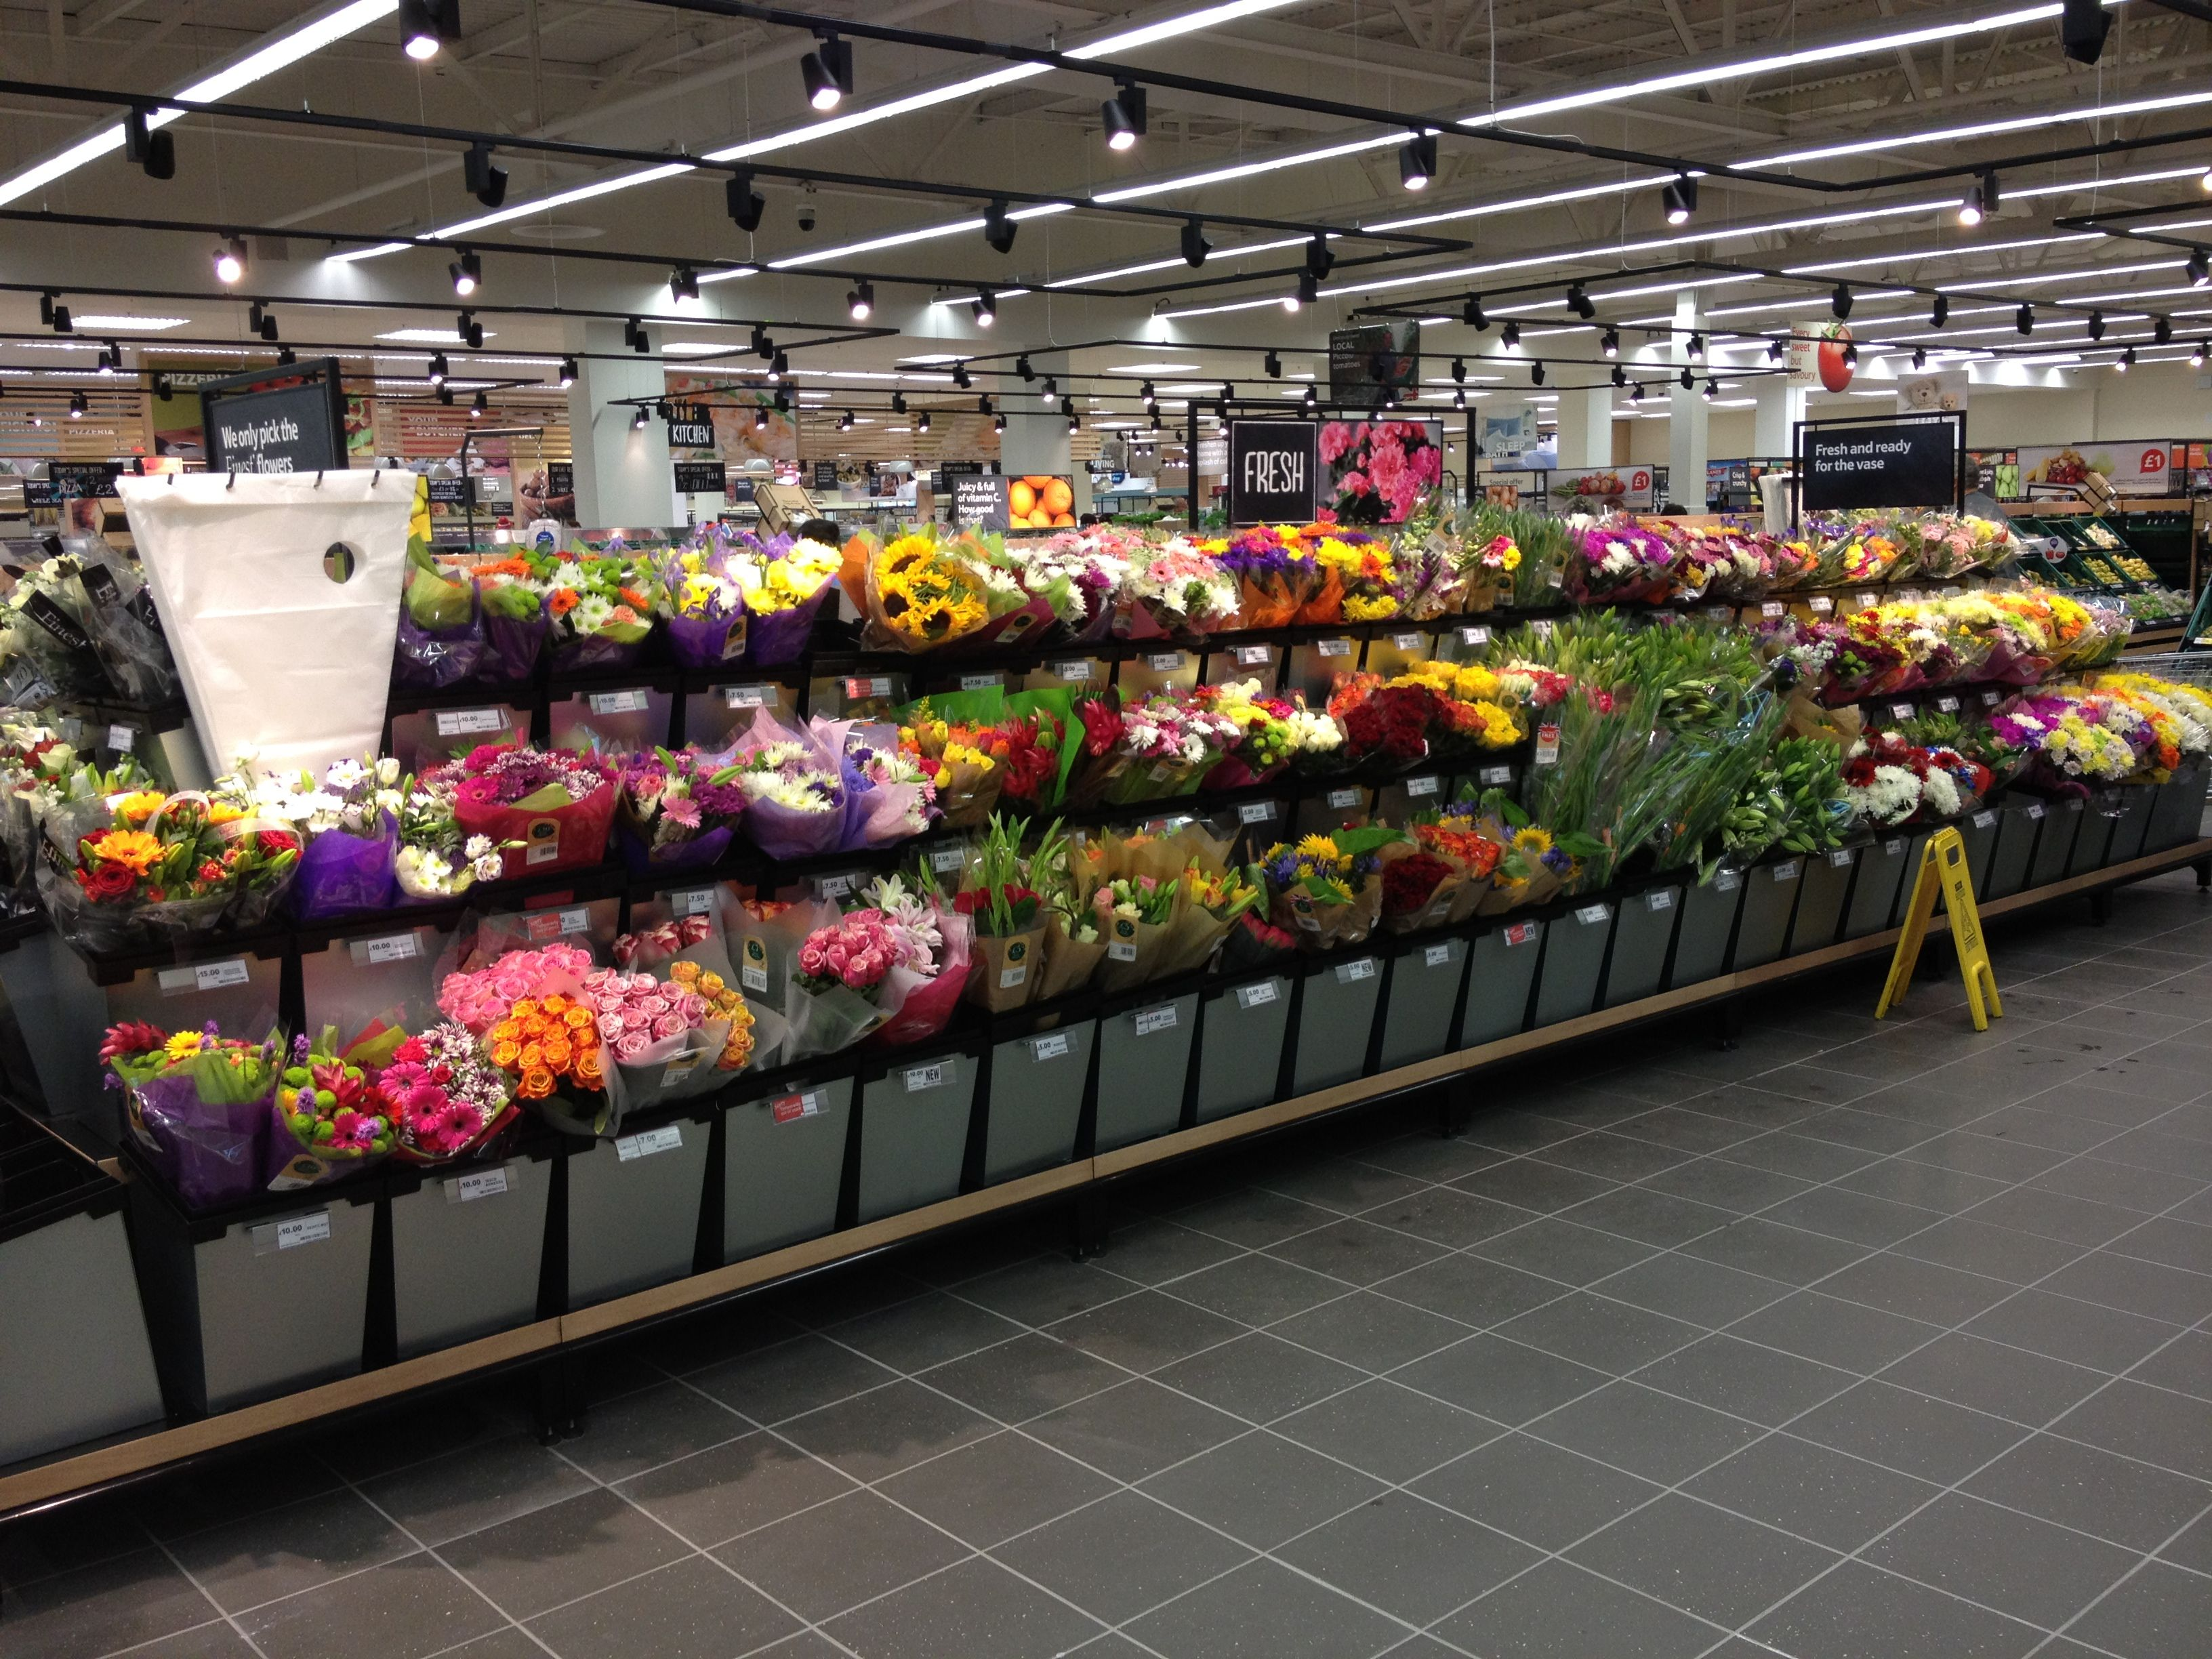 Flower display shown at Tesco | Horticulture & Flowers | Pinterest ...